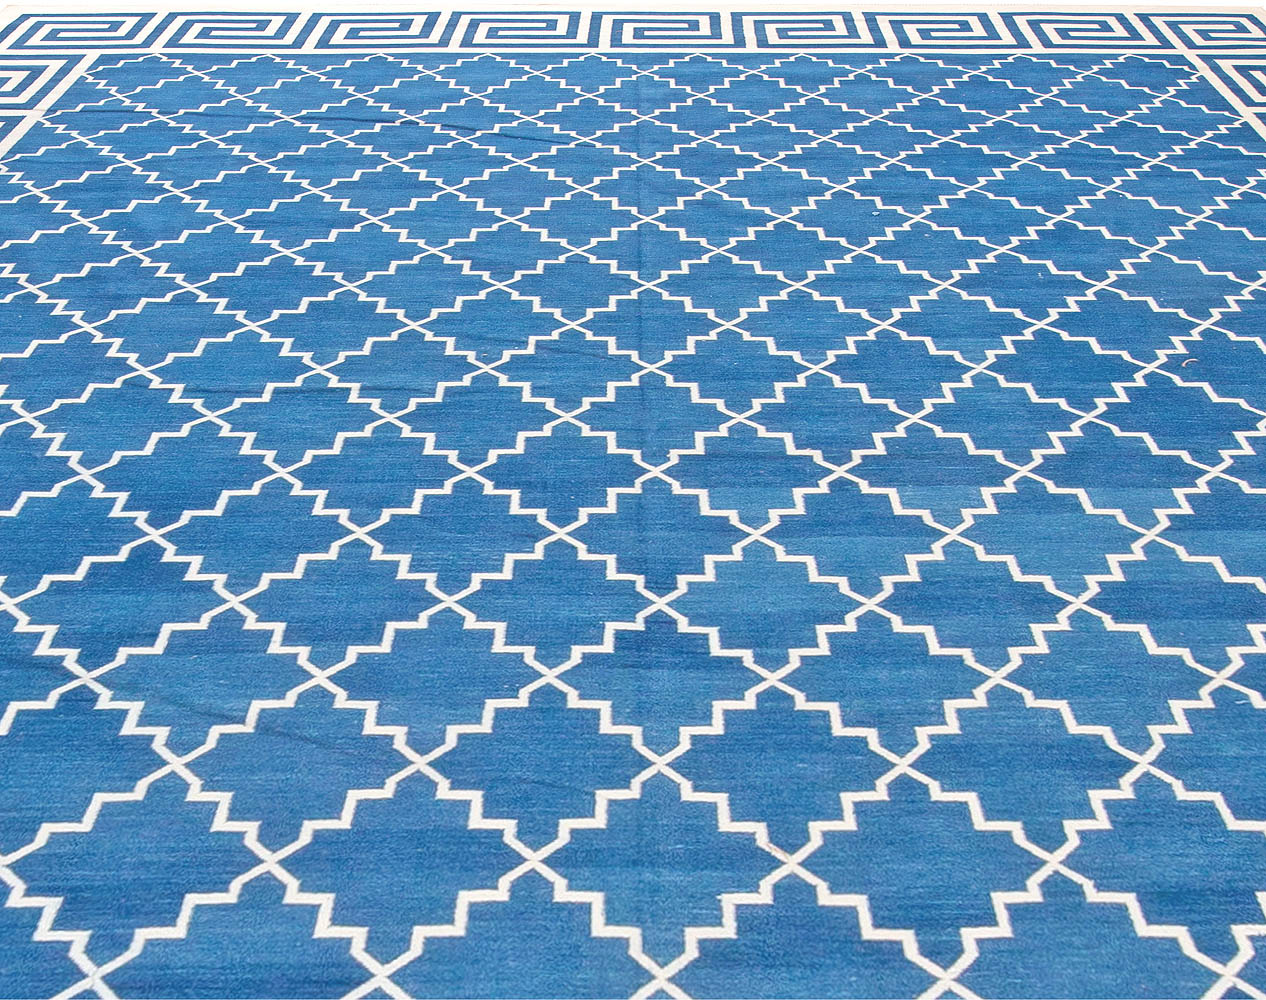 Contemporary Indian Dhurrie Blue and White Handwoven Cotton Rug N11016